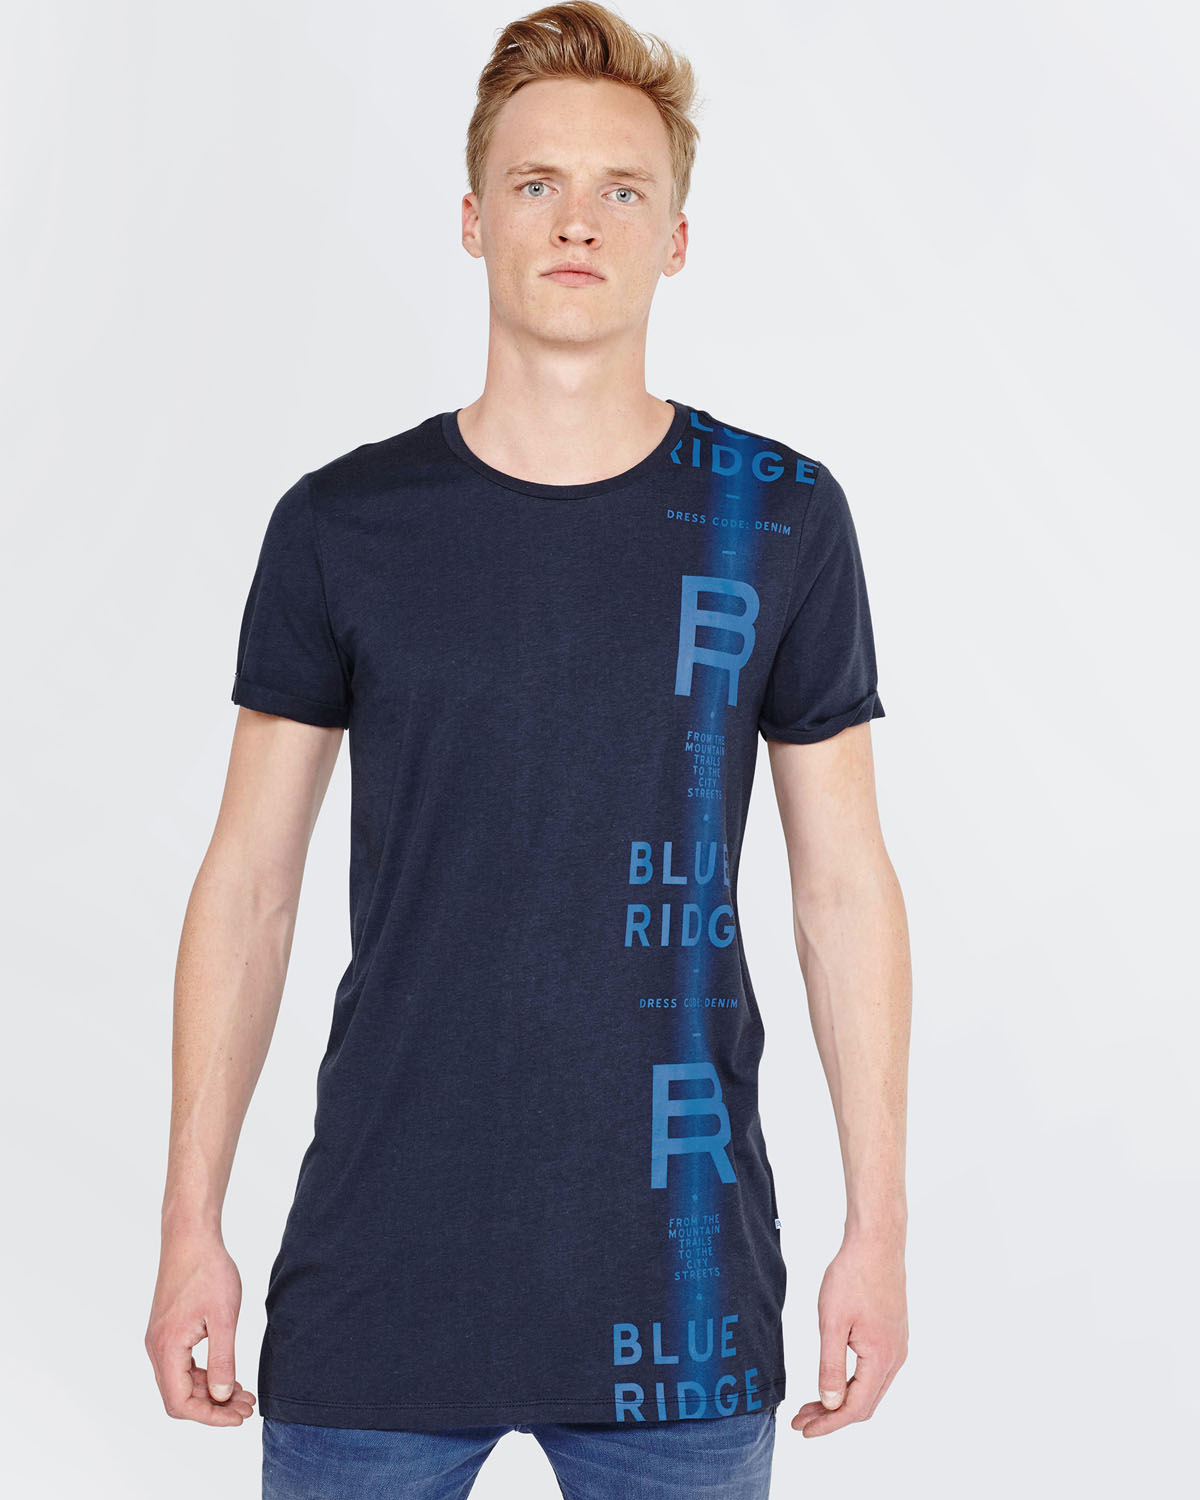 Men's Long Fit T-Shirts. Get all your menswear essentials at the official online store of JACK & JONES Canada. FREE SHIPPING ON ALL ORDERS! Menu. 0. New Arrivals. Clothing. LONG FIT T-SHIRT WITH LAYERED DETAILS. JACK&JONES ORIGINALS. $ Quick View. LONG FIT T-SHIRT WITH LAYERED DETAILS. JACK&JONES ORIGINALS. $